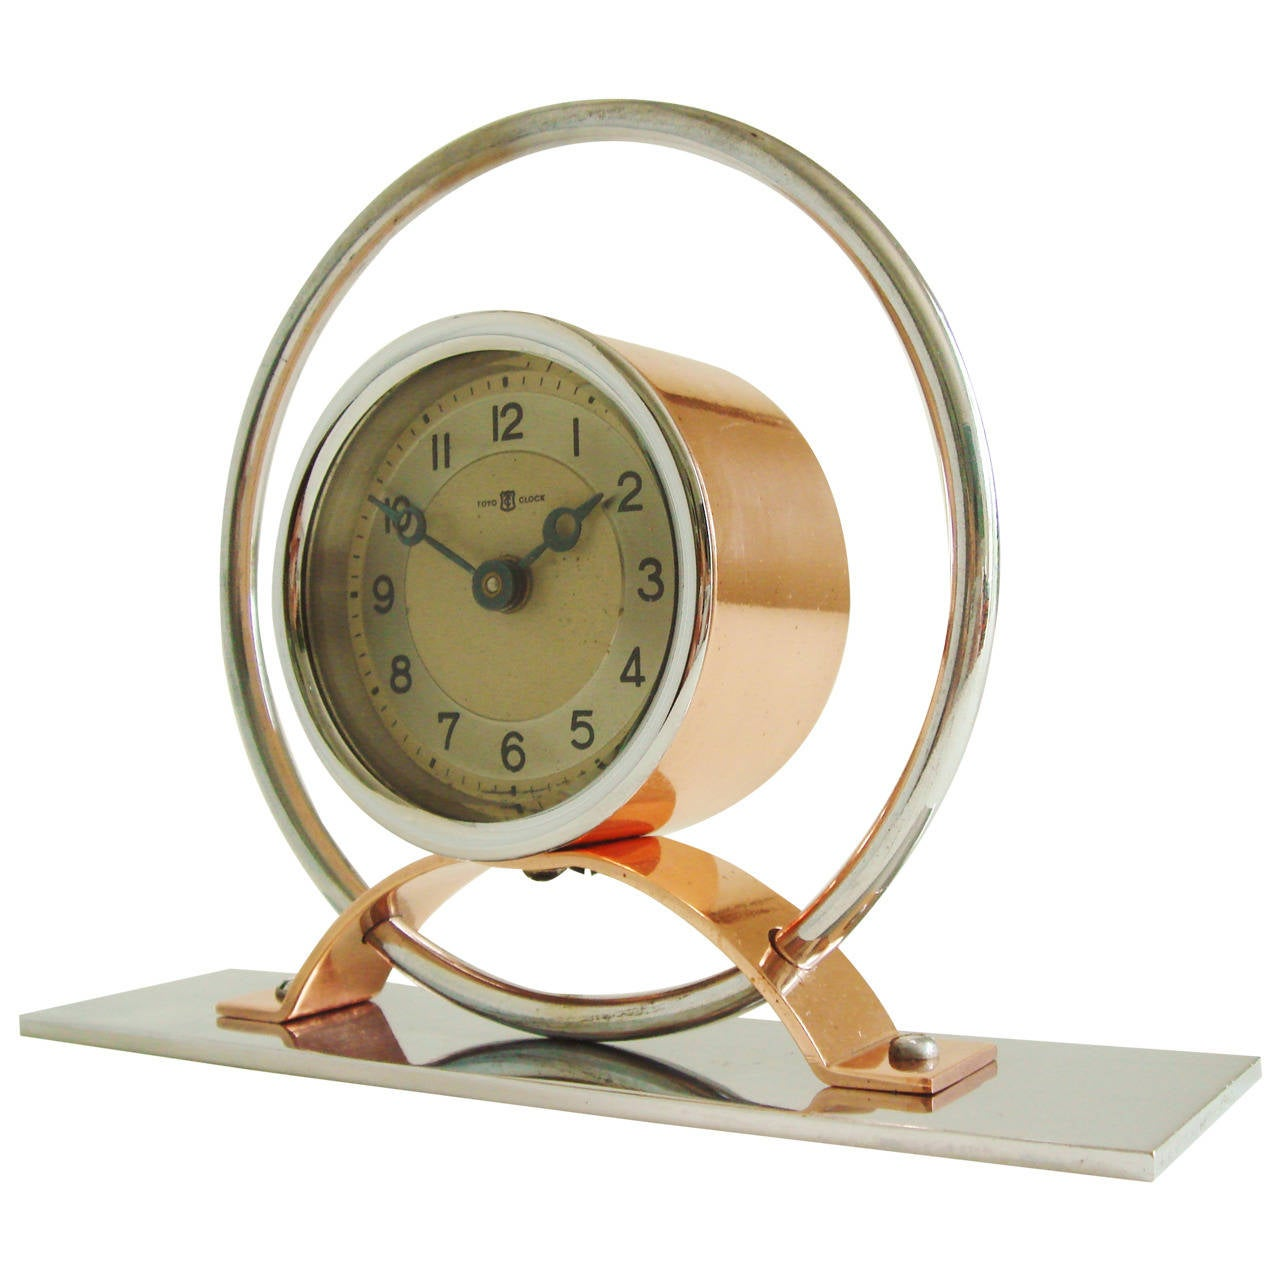 Japanese Art Deco Chrome and Copper Geometric Mechanical Alarm Clock by Toyo